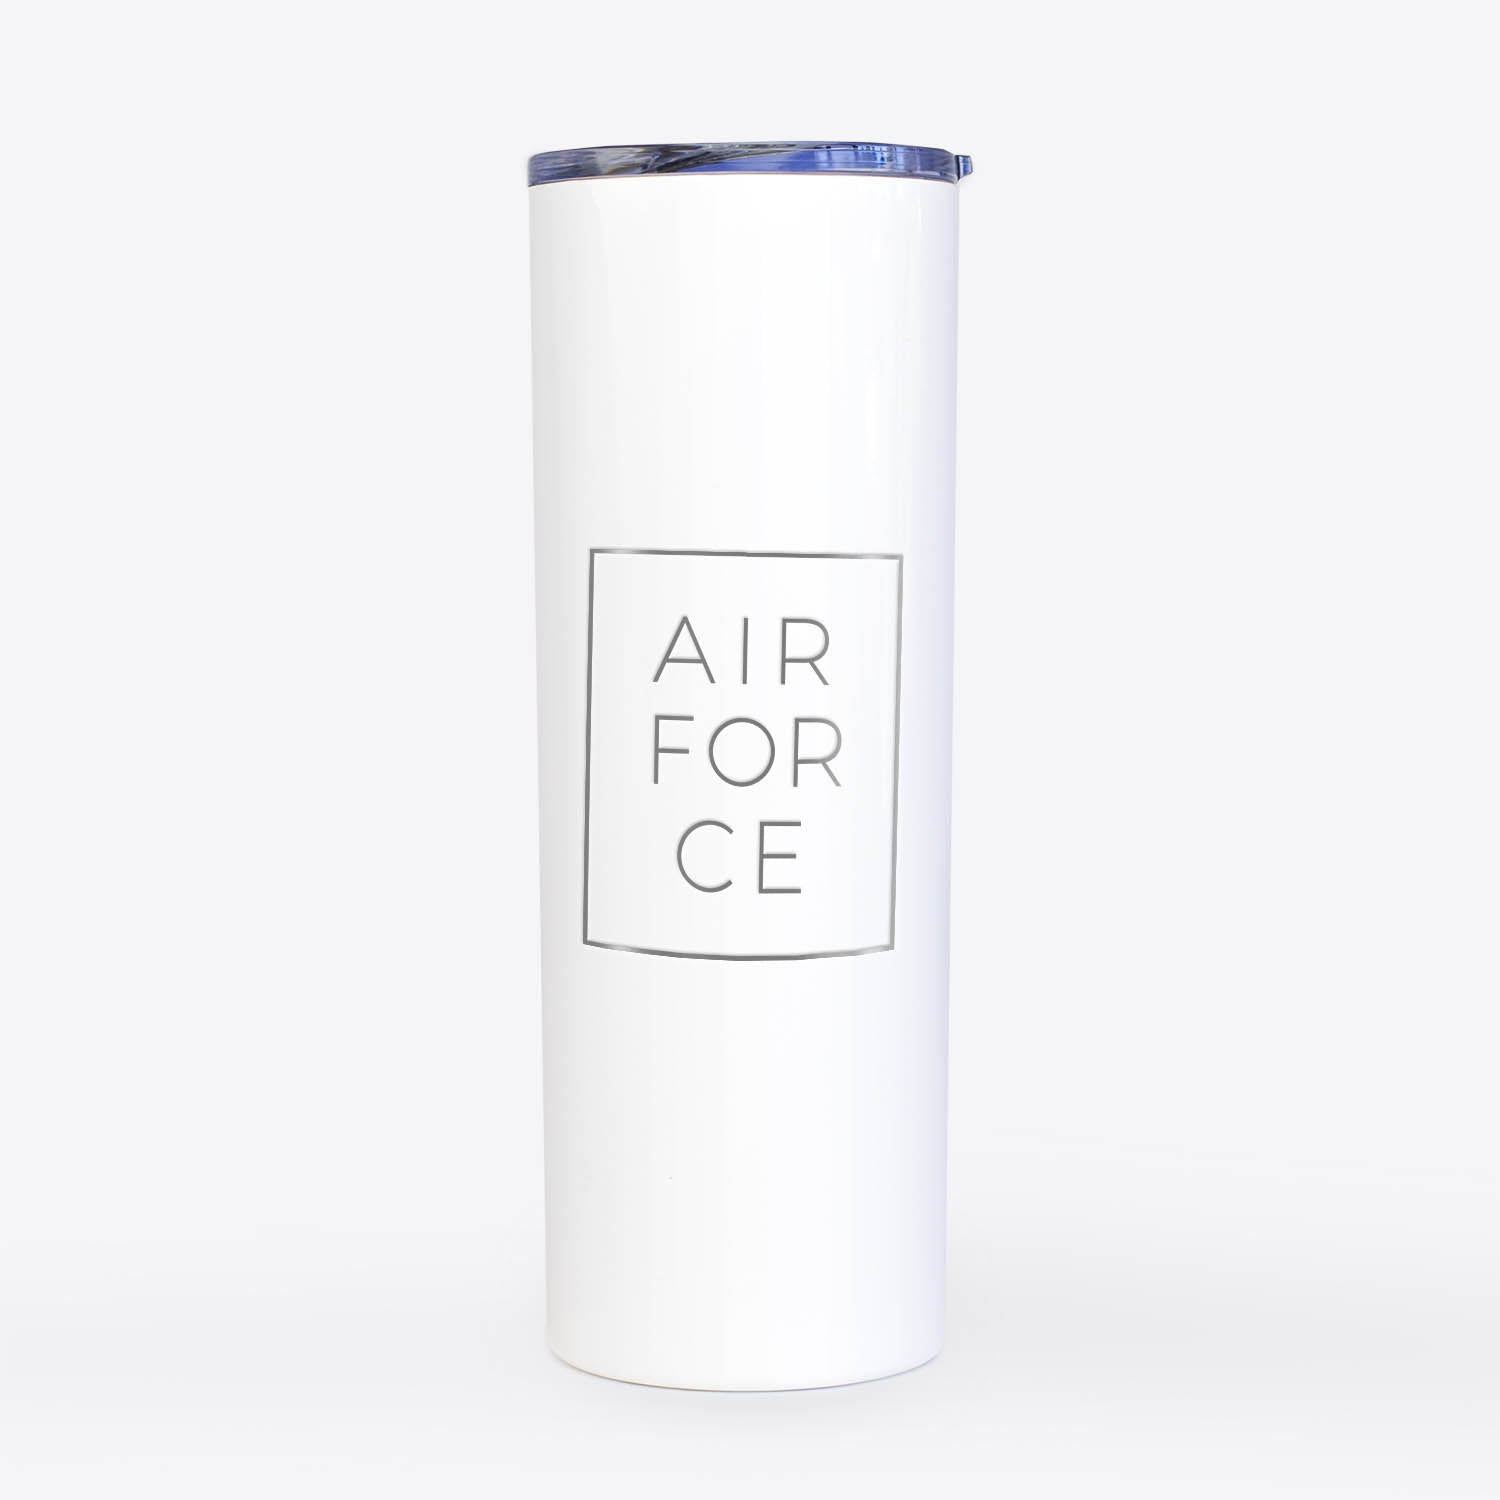 Air Force Boxed  - 20oz Skinny Tumbler